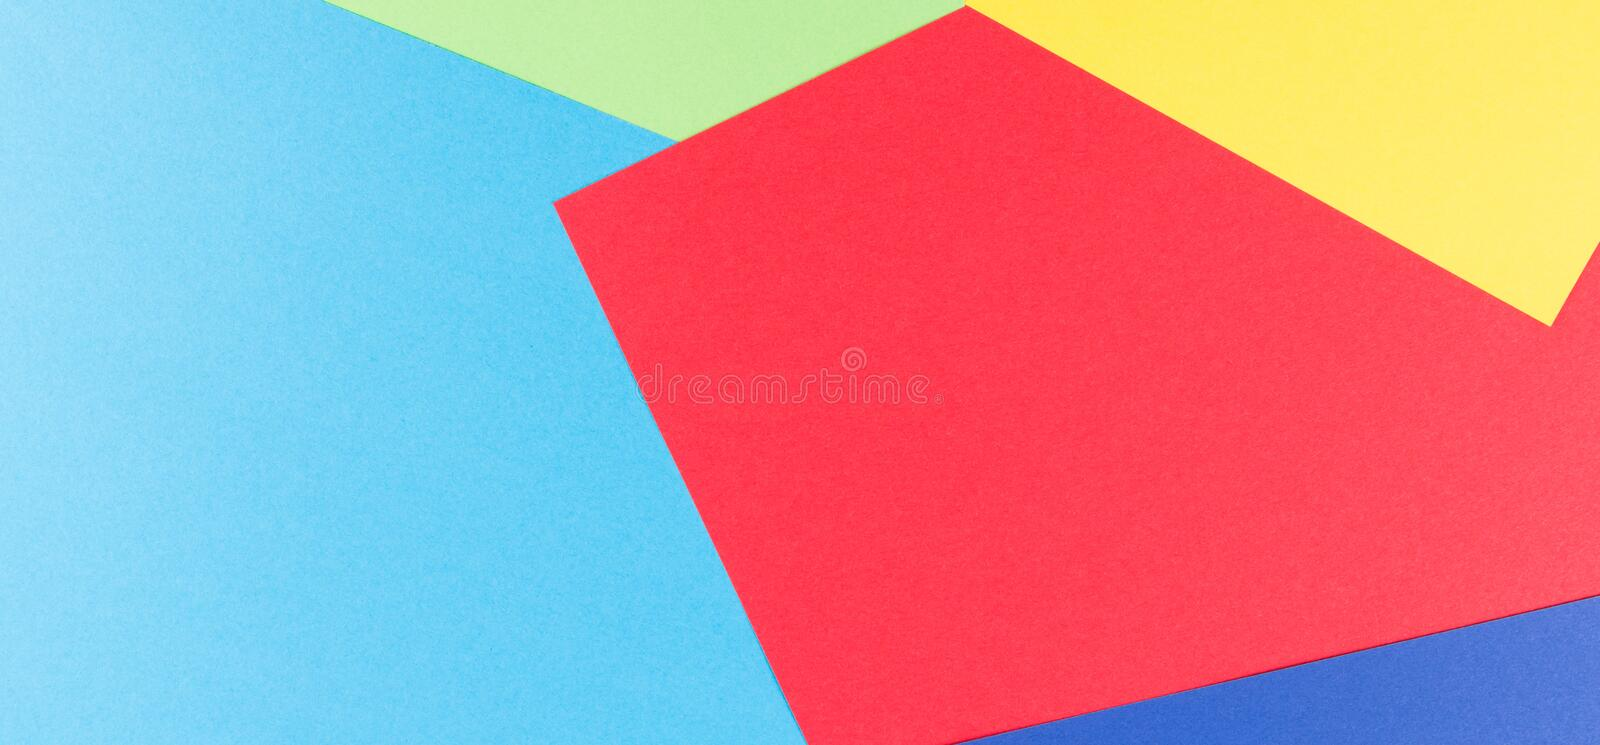 Color Papers Geometry Flat Composition Background With Yellow, Green ...